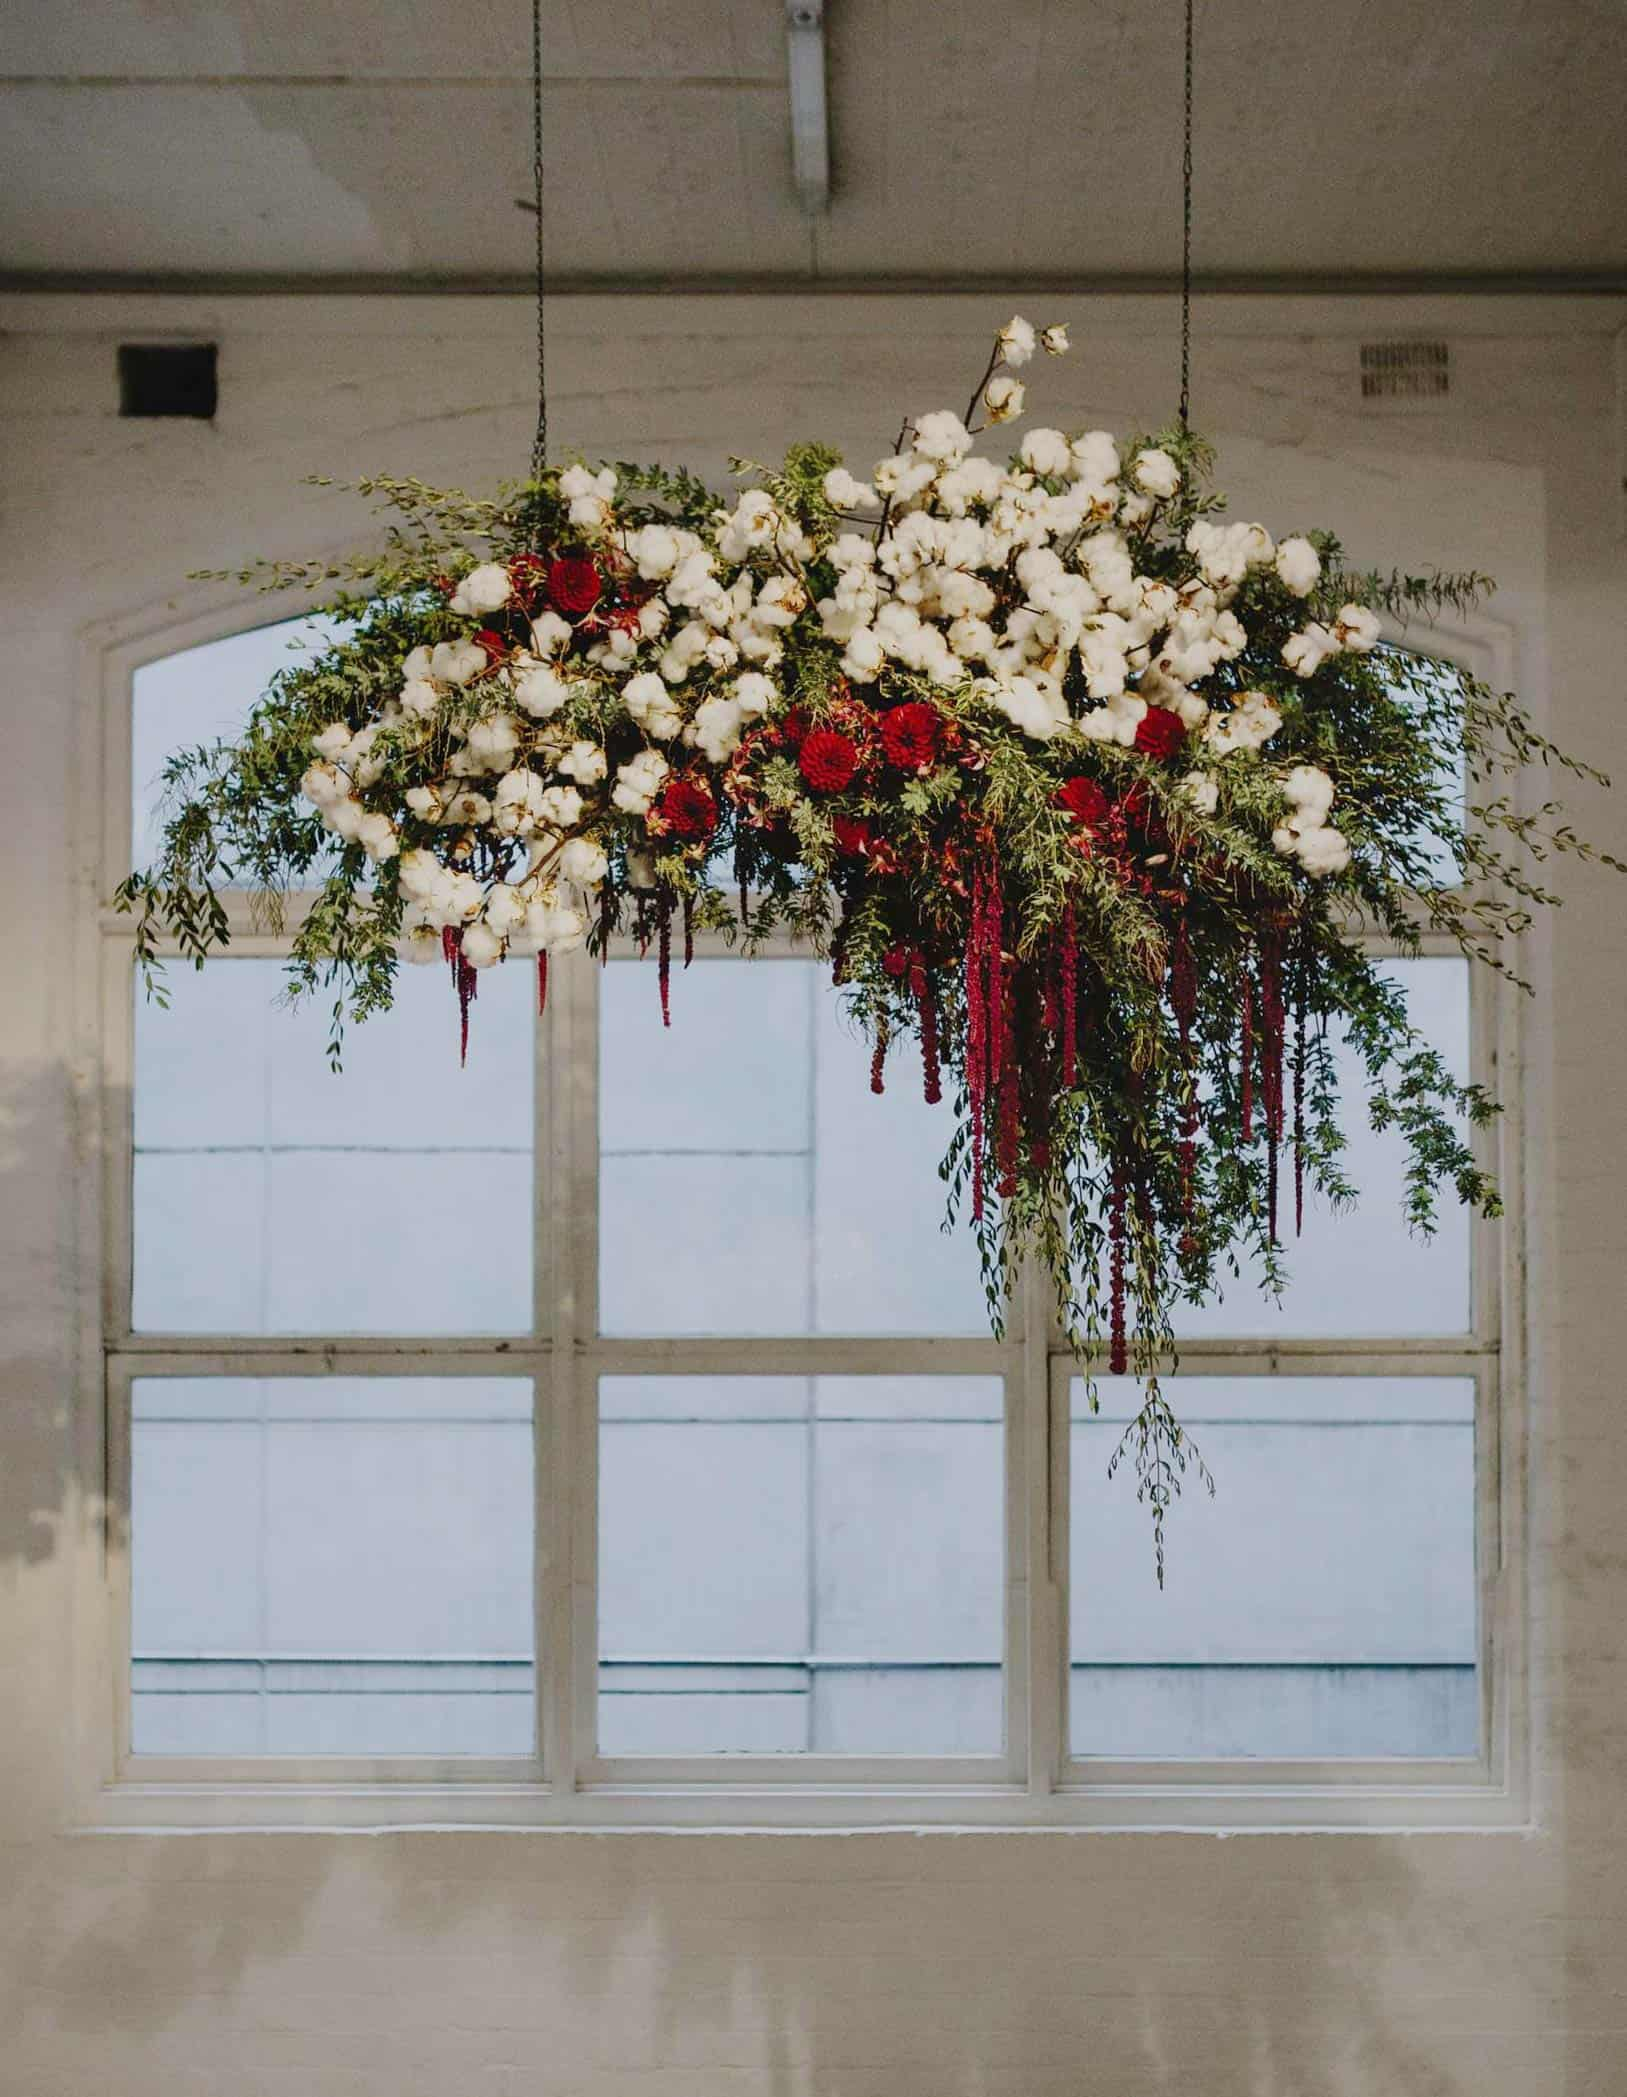 hanging floral installaton with cotton and amaranth